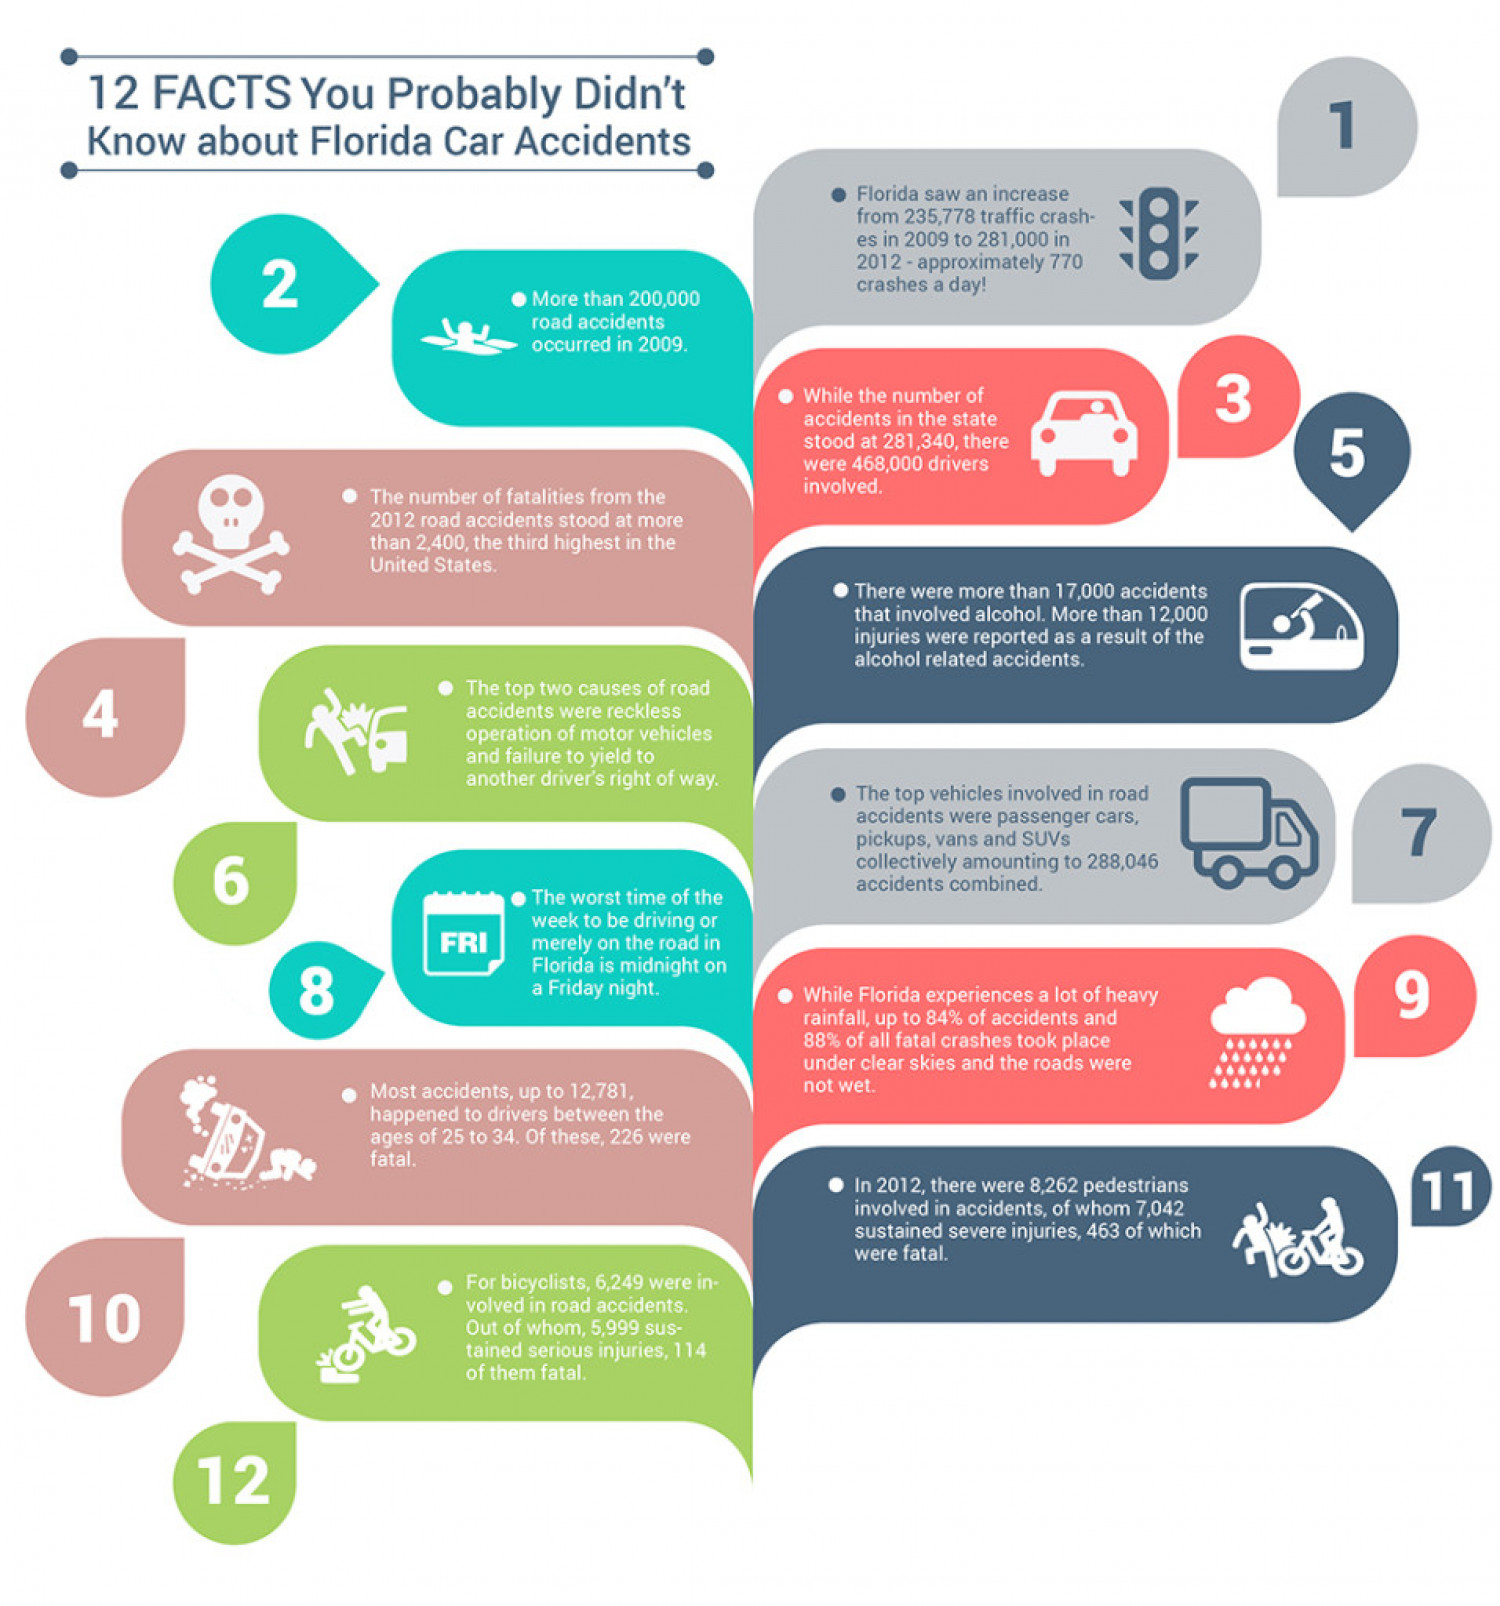 12 Facts You Probably Didn't Know about Florida Car Accidents Infographic